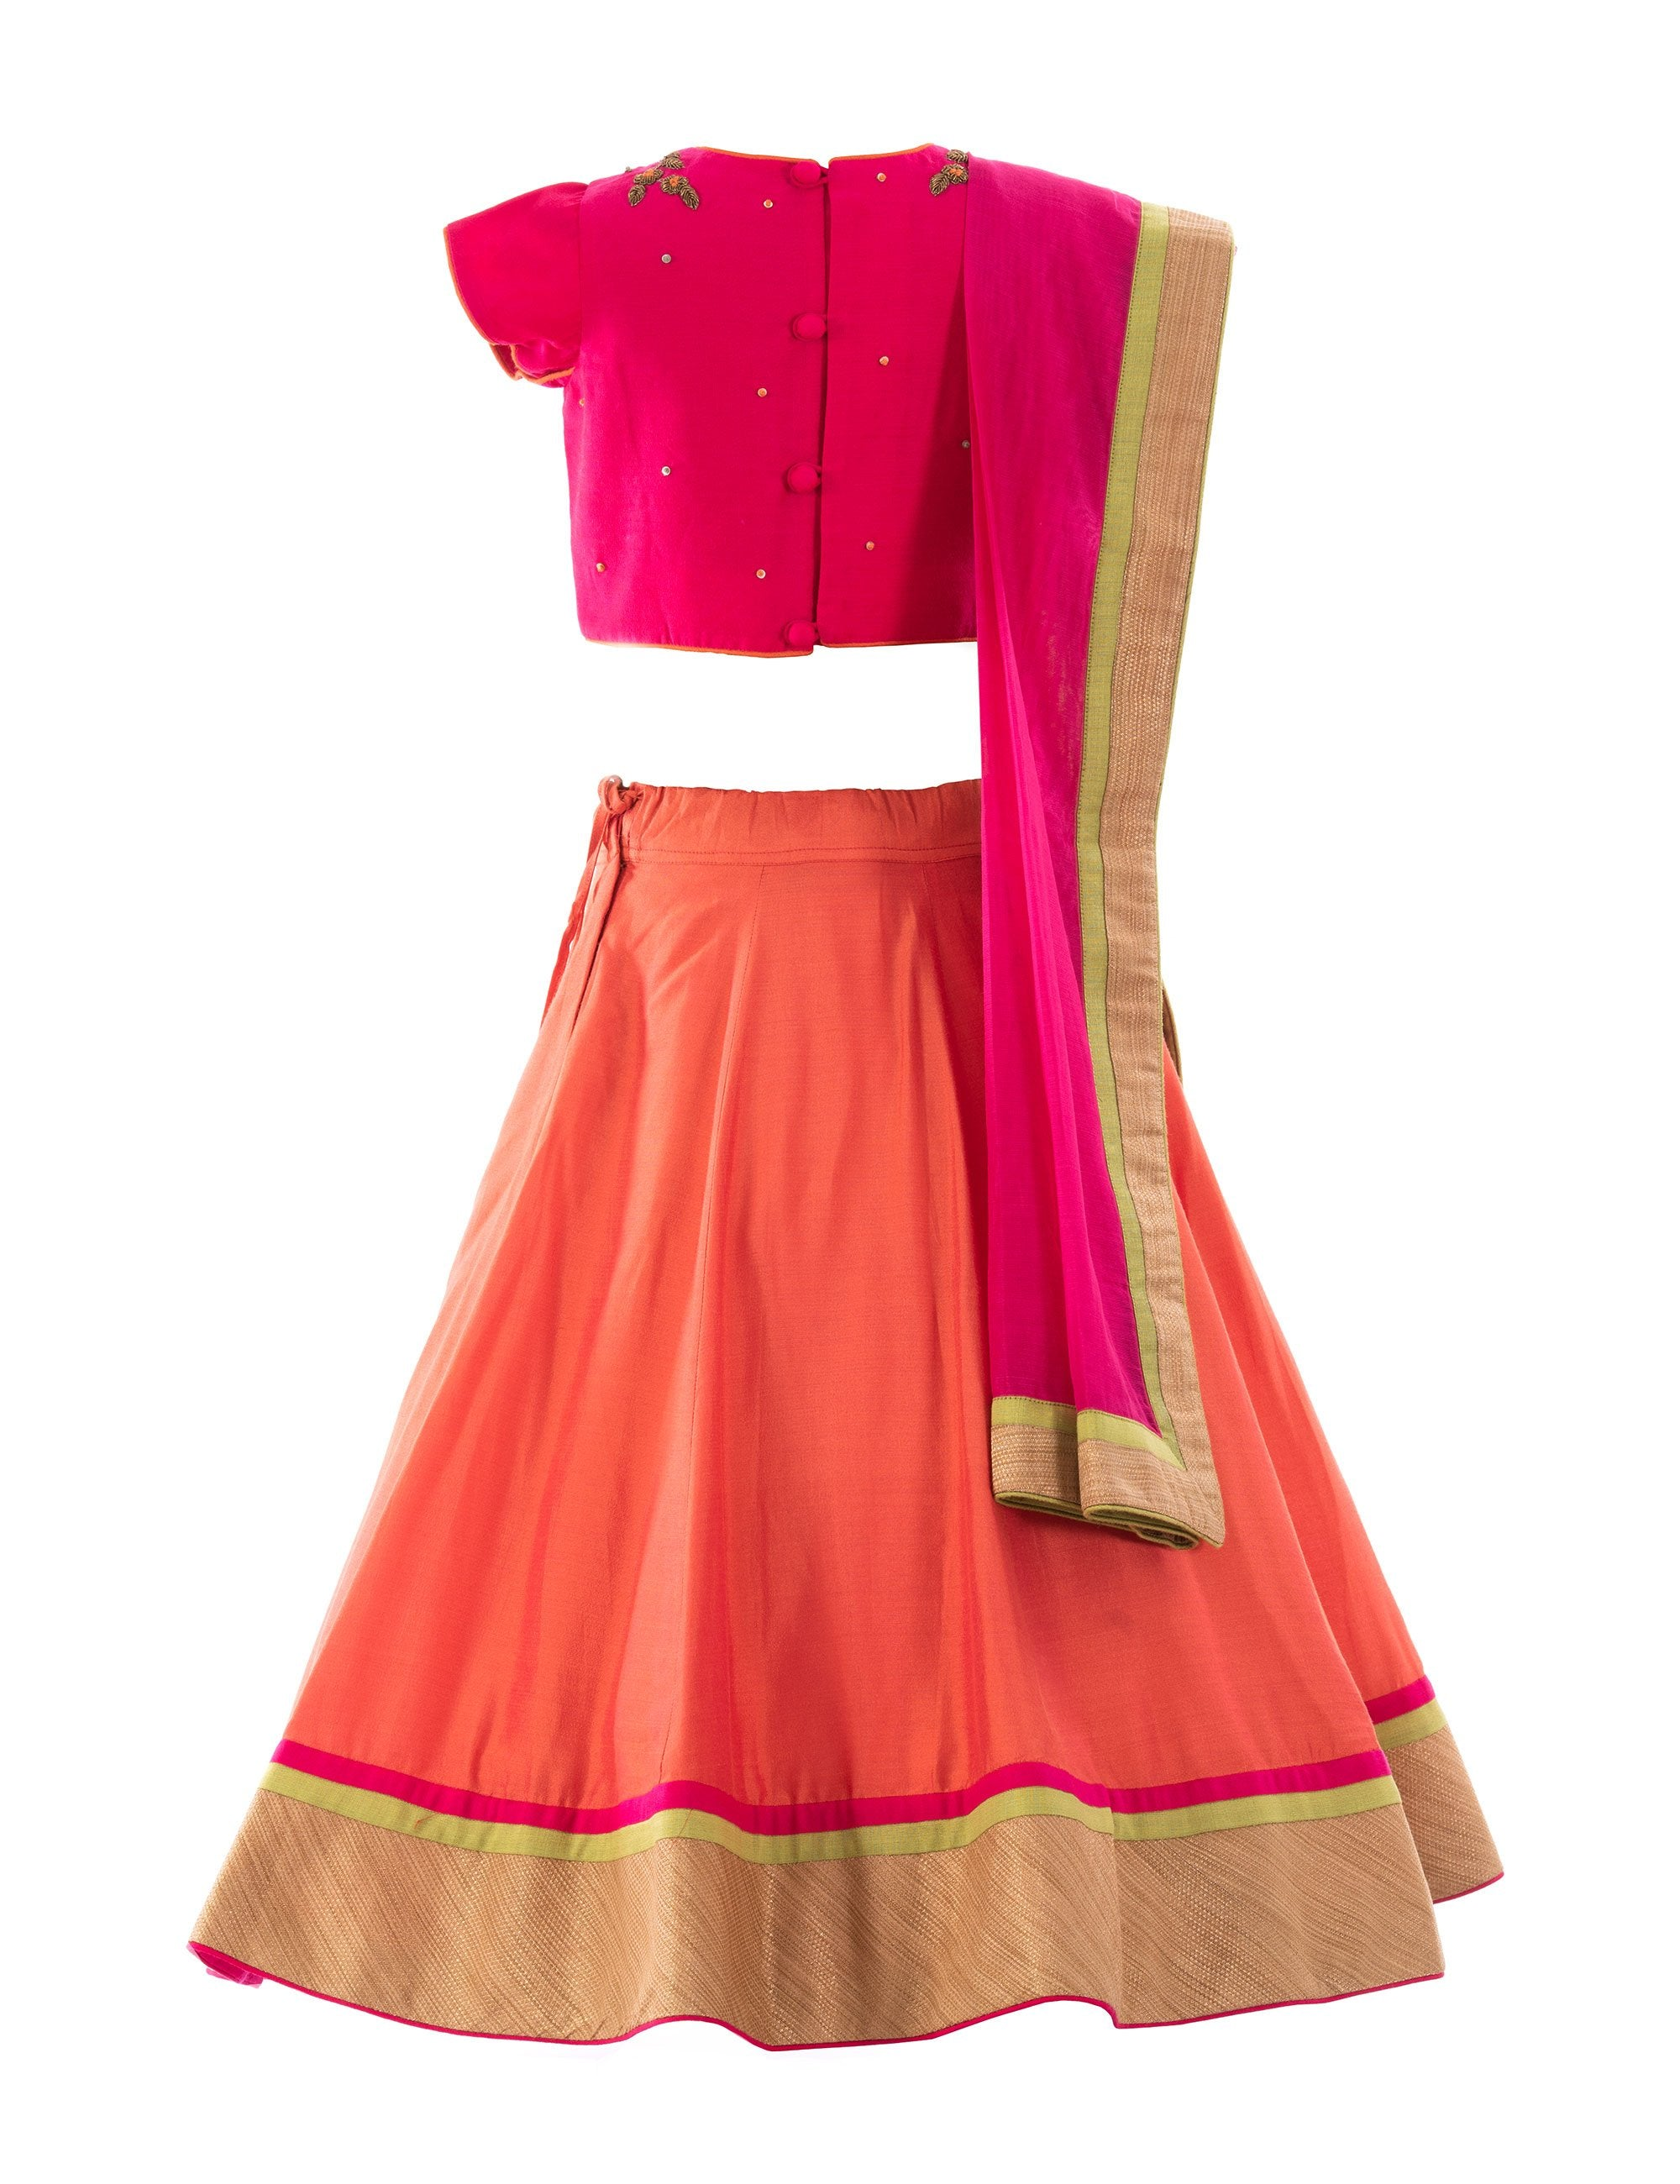 Zardozi Motif Top with Lehenga in Orange for Girls